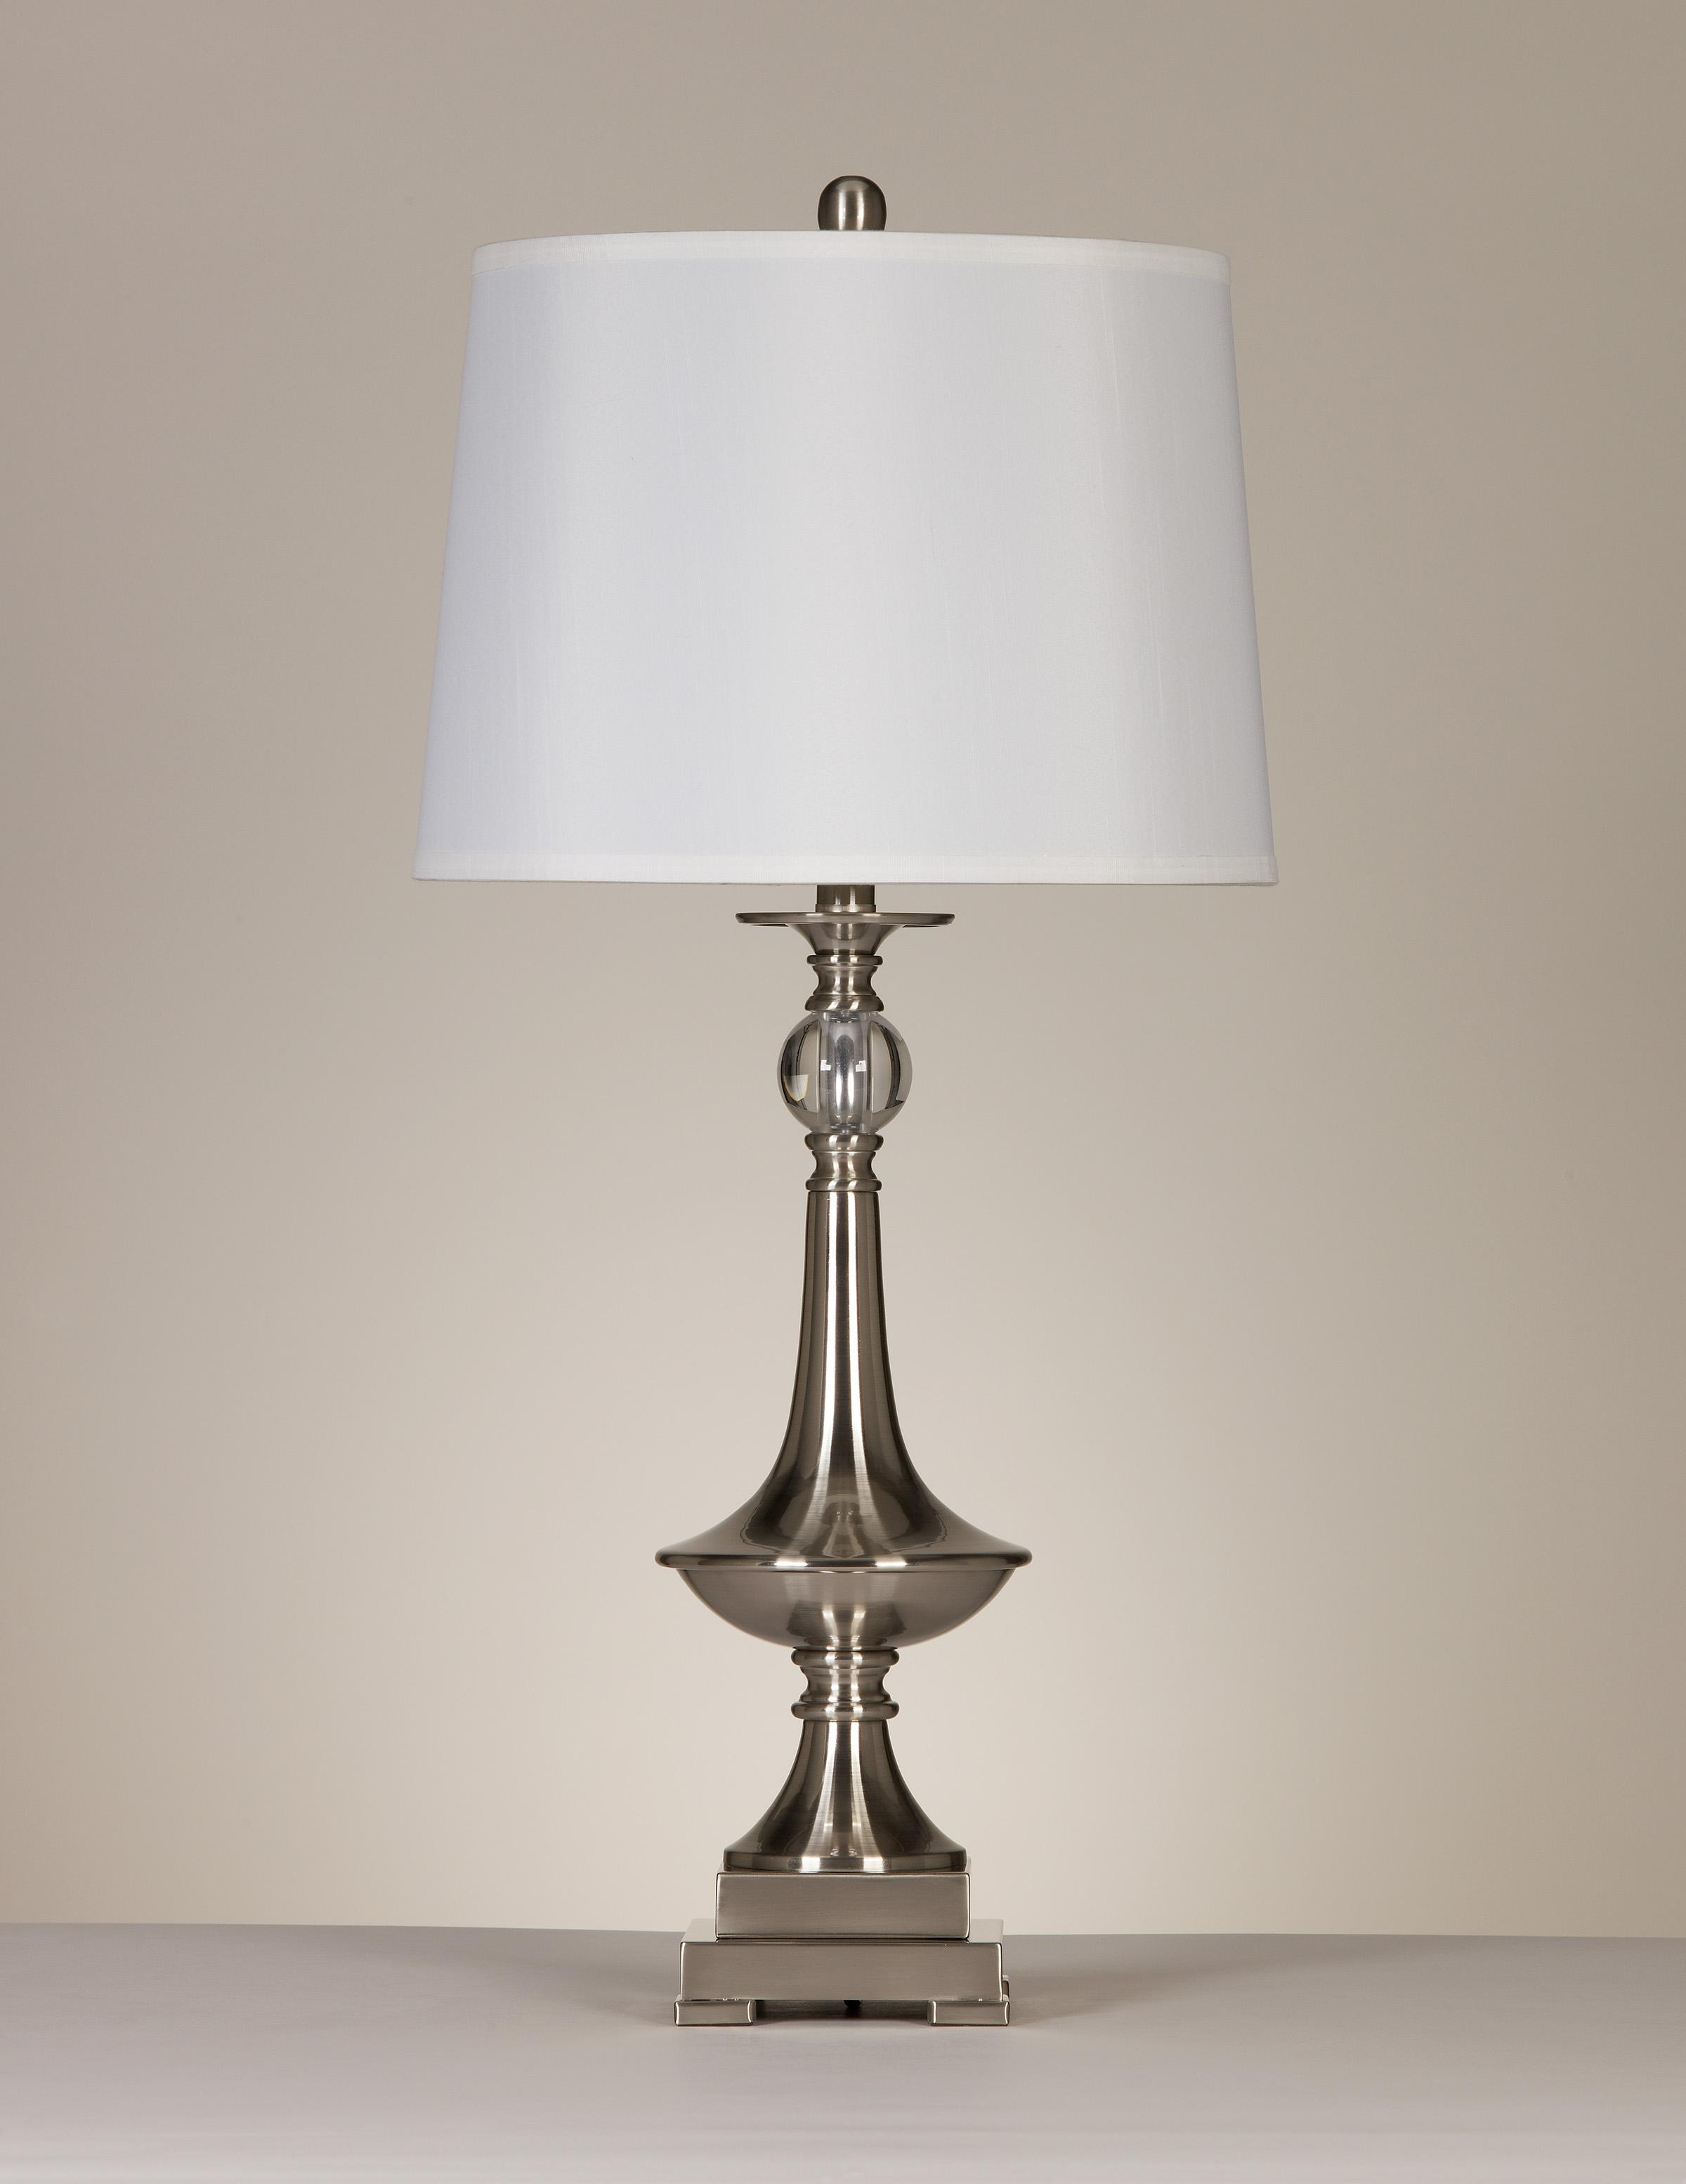 Signature Design by Ashley Lamps - Contemporary Set of 2 Newlyn Metal Table Lamps - Item Number: L428354